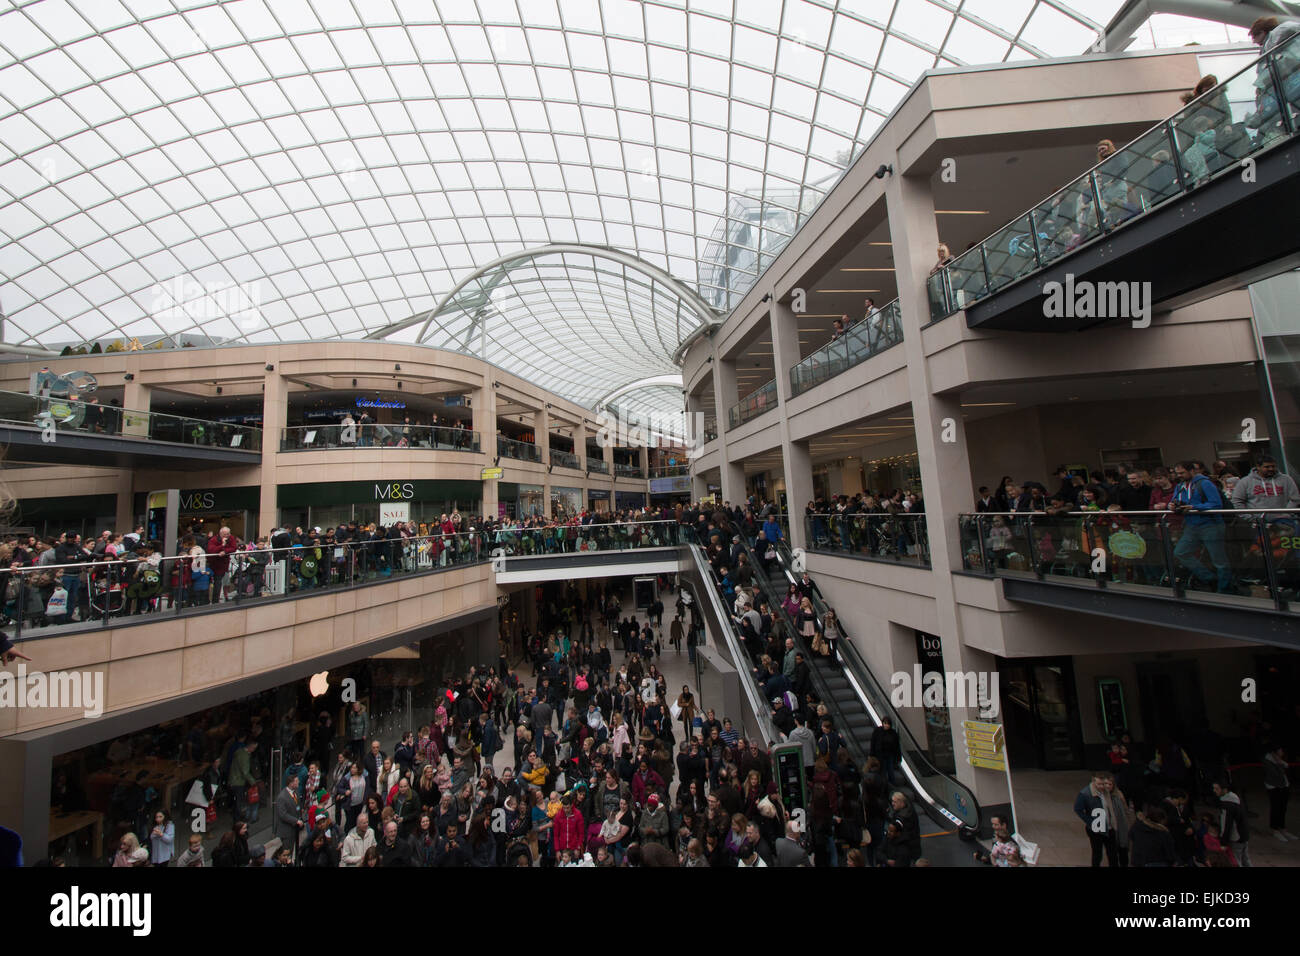 Shoppers in Trinity shopping centre, Leeds - Stock Image